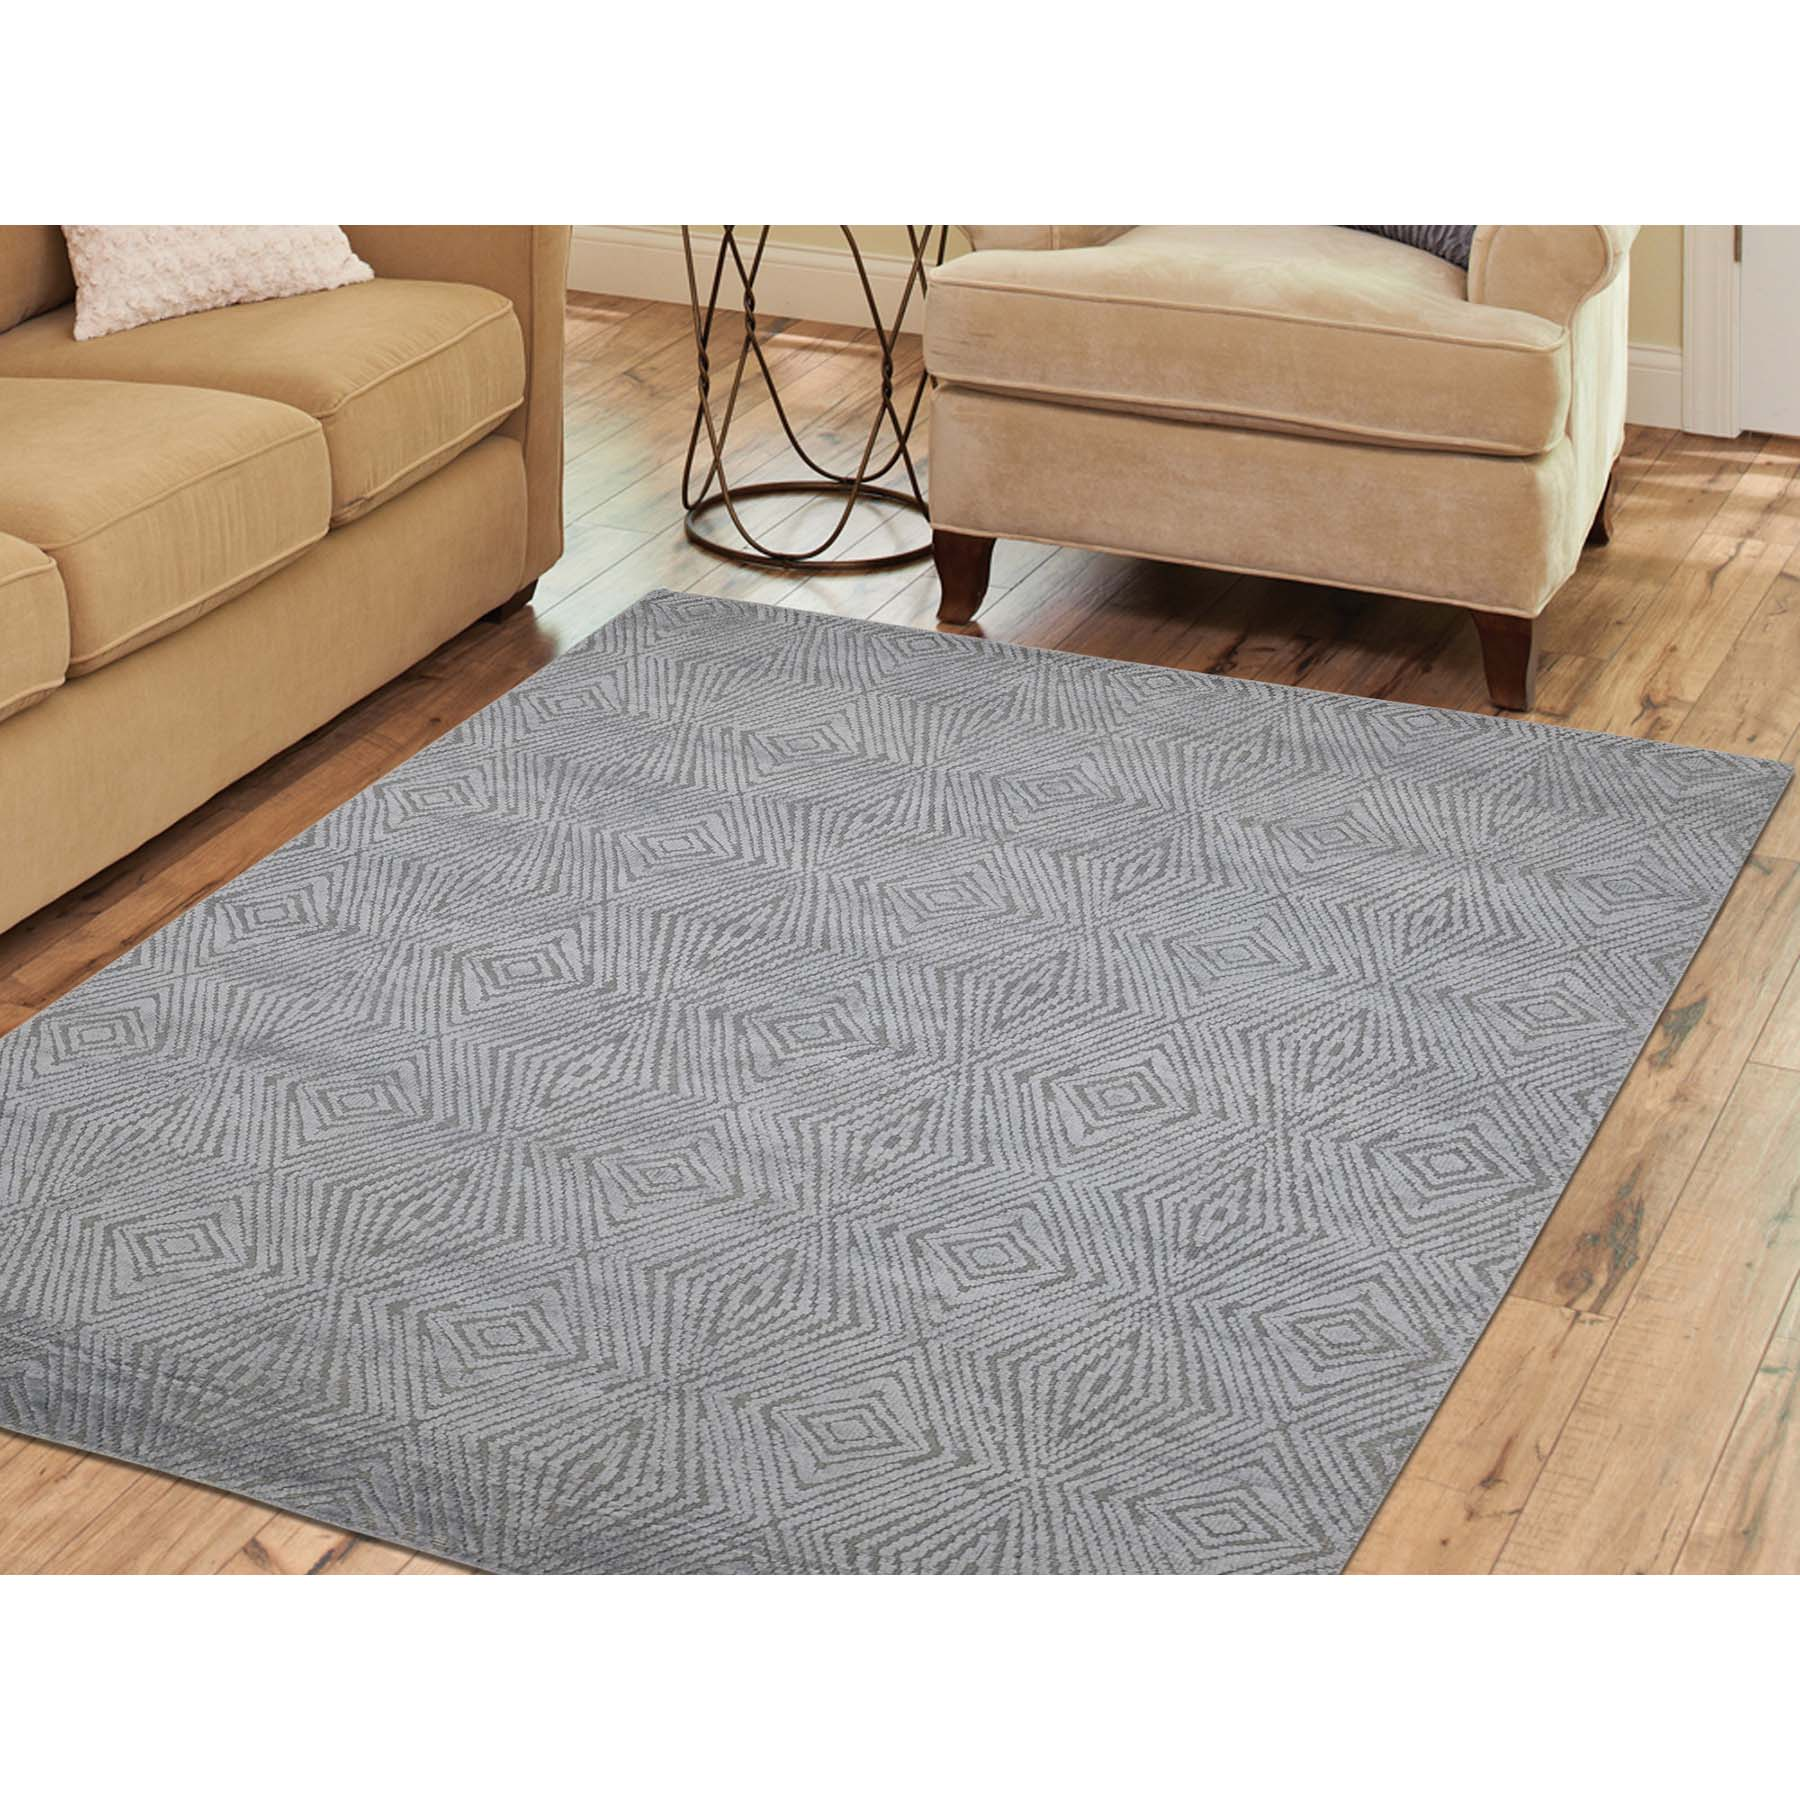 5-5 x7-6  Tone On Tone Modern Wool And Silk Hand Knotted Oriental Rug